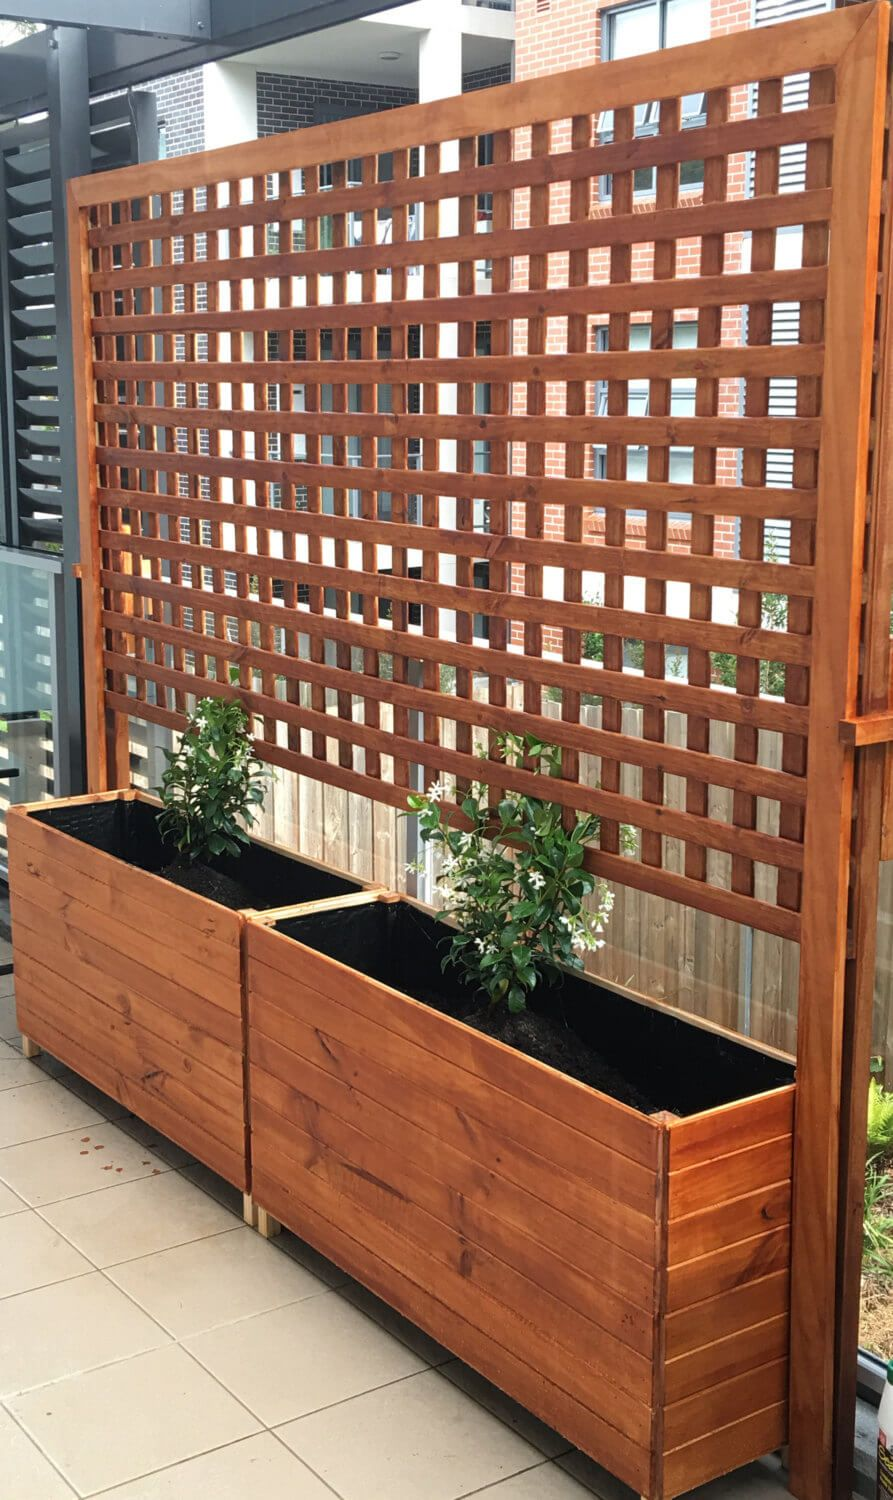 33 Beautiful BuiltIn Planter Ideas to Upgrade Your